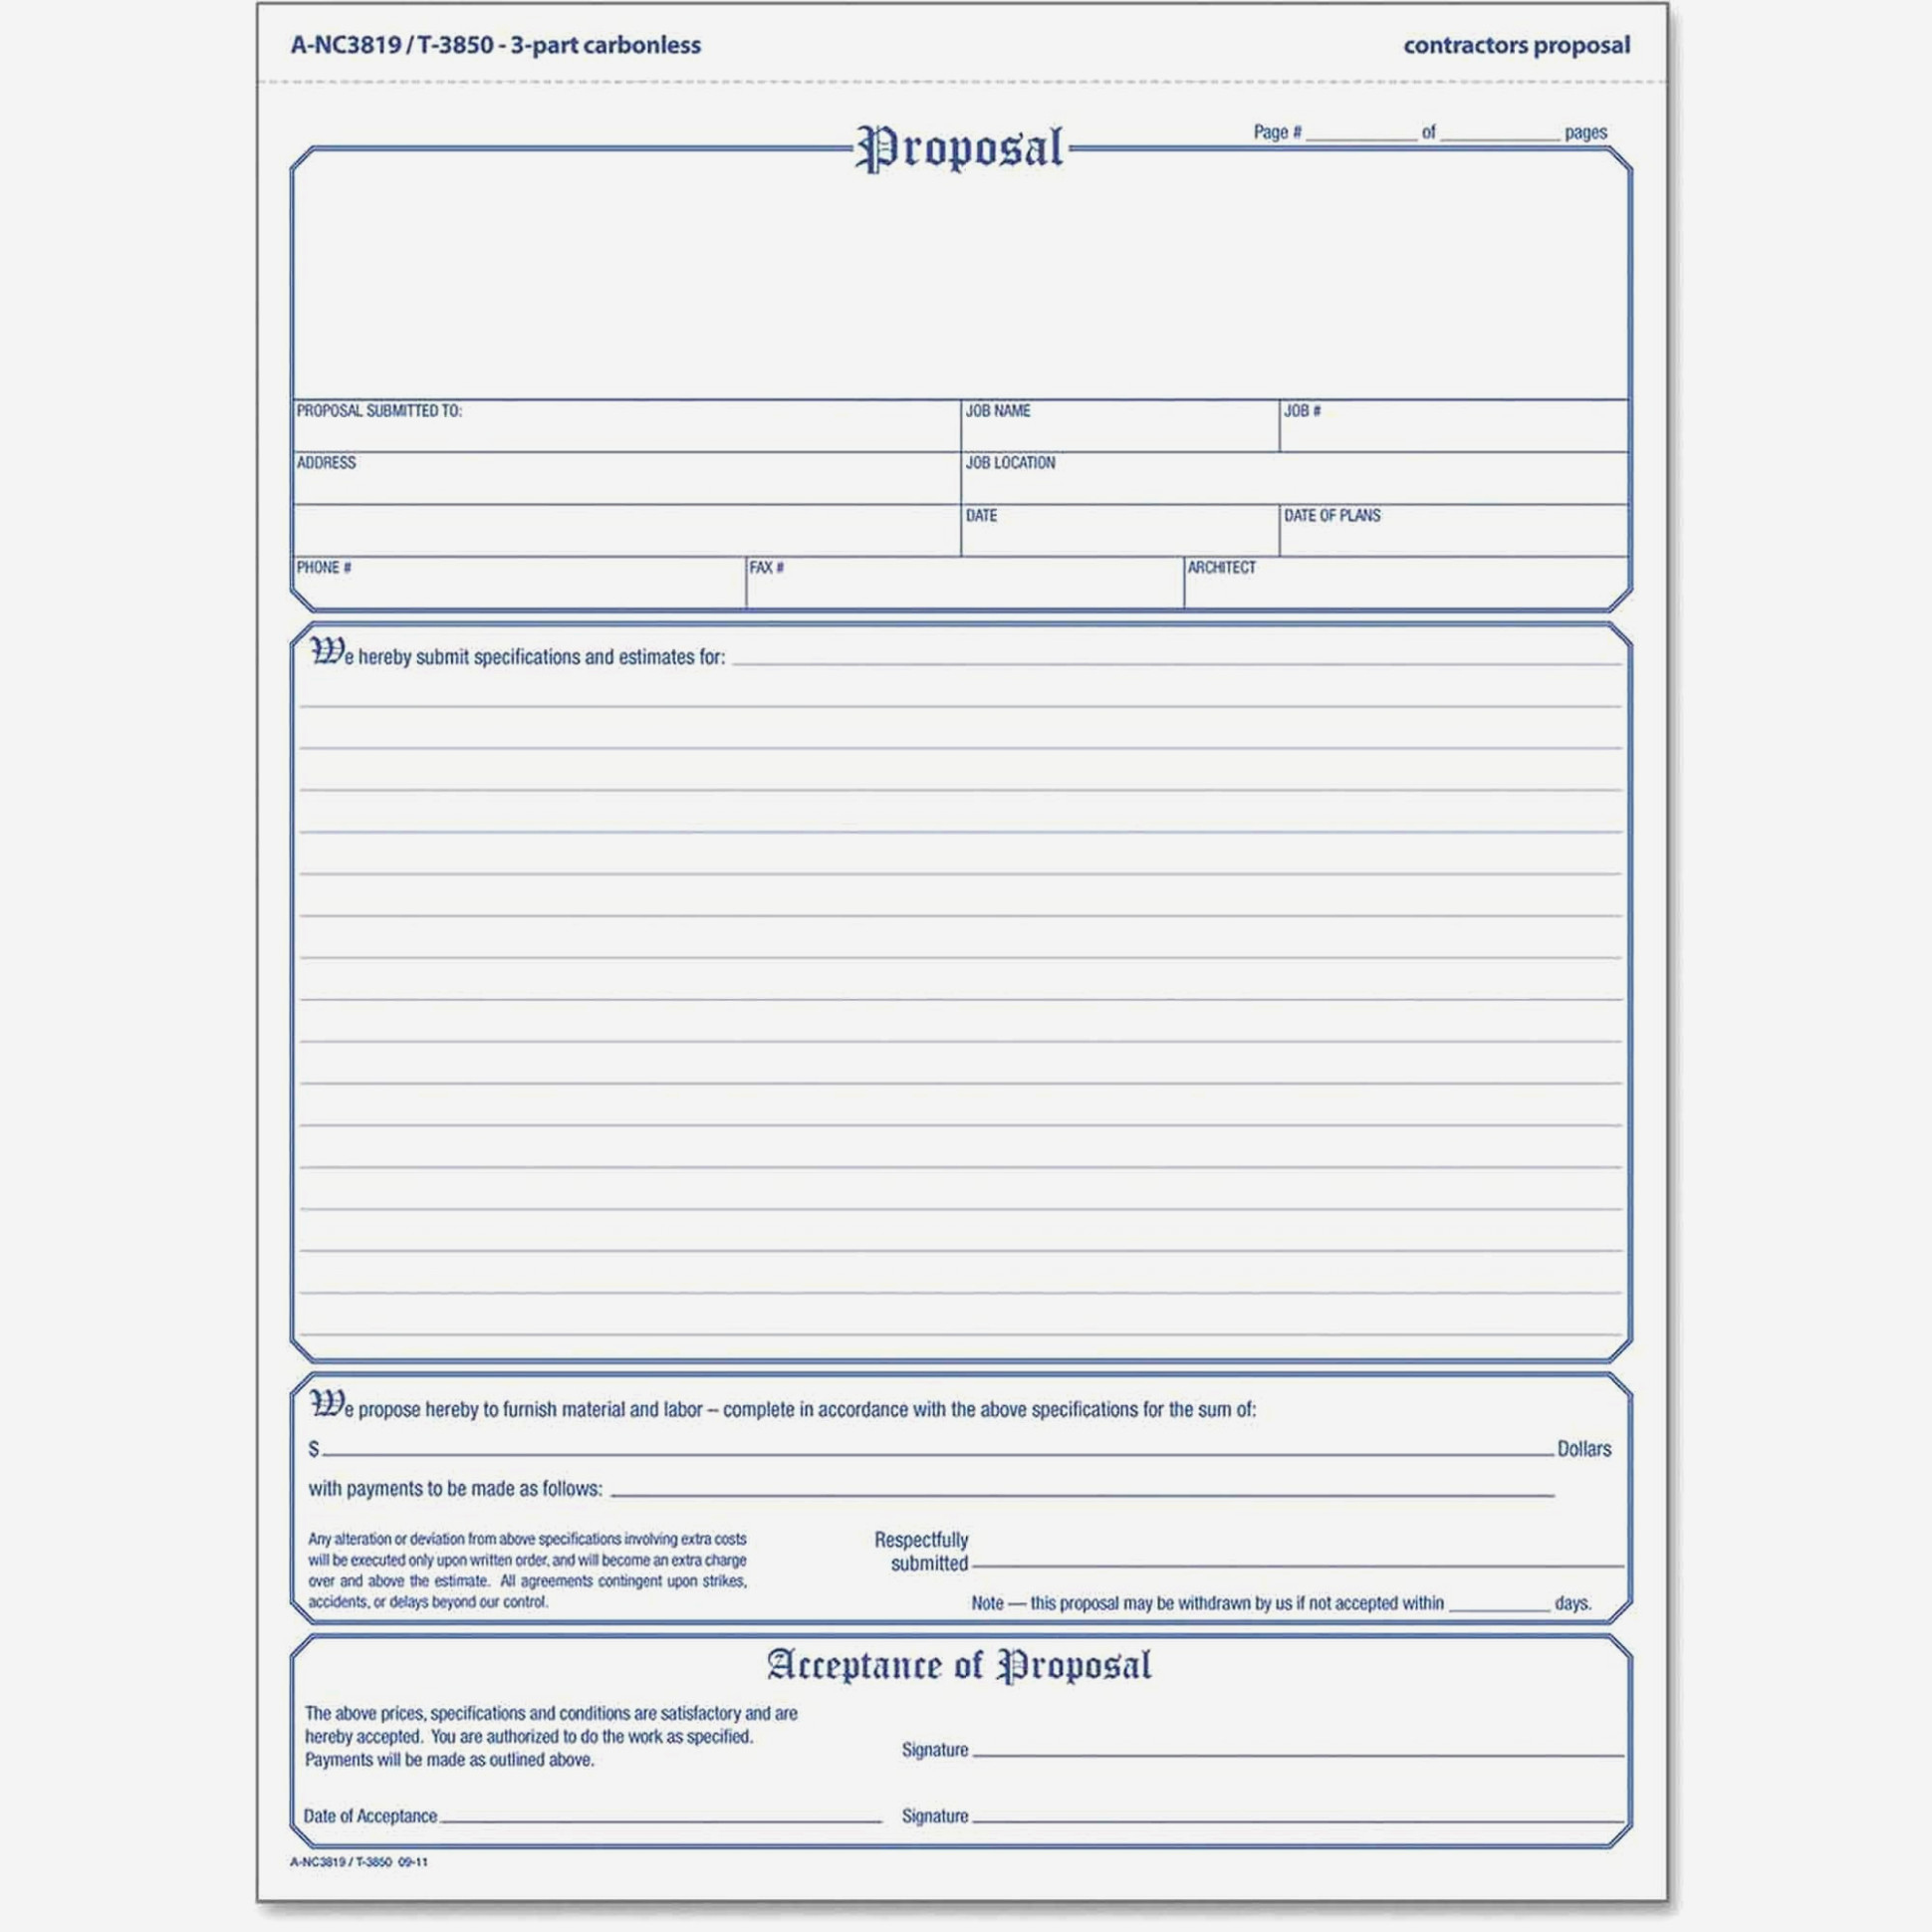 free printable proposal forms image